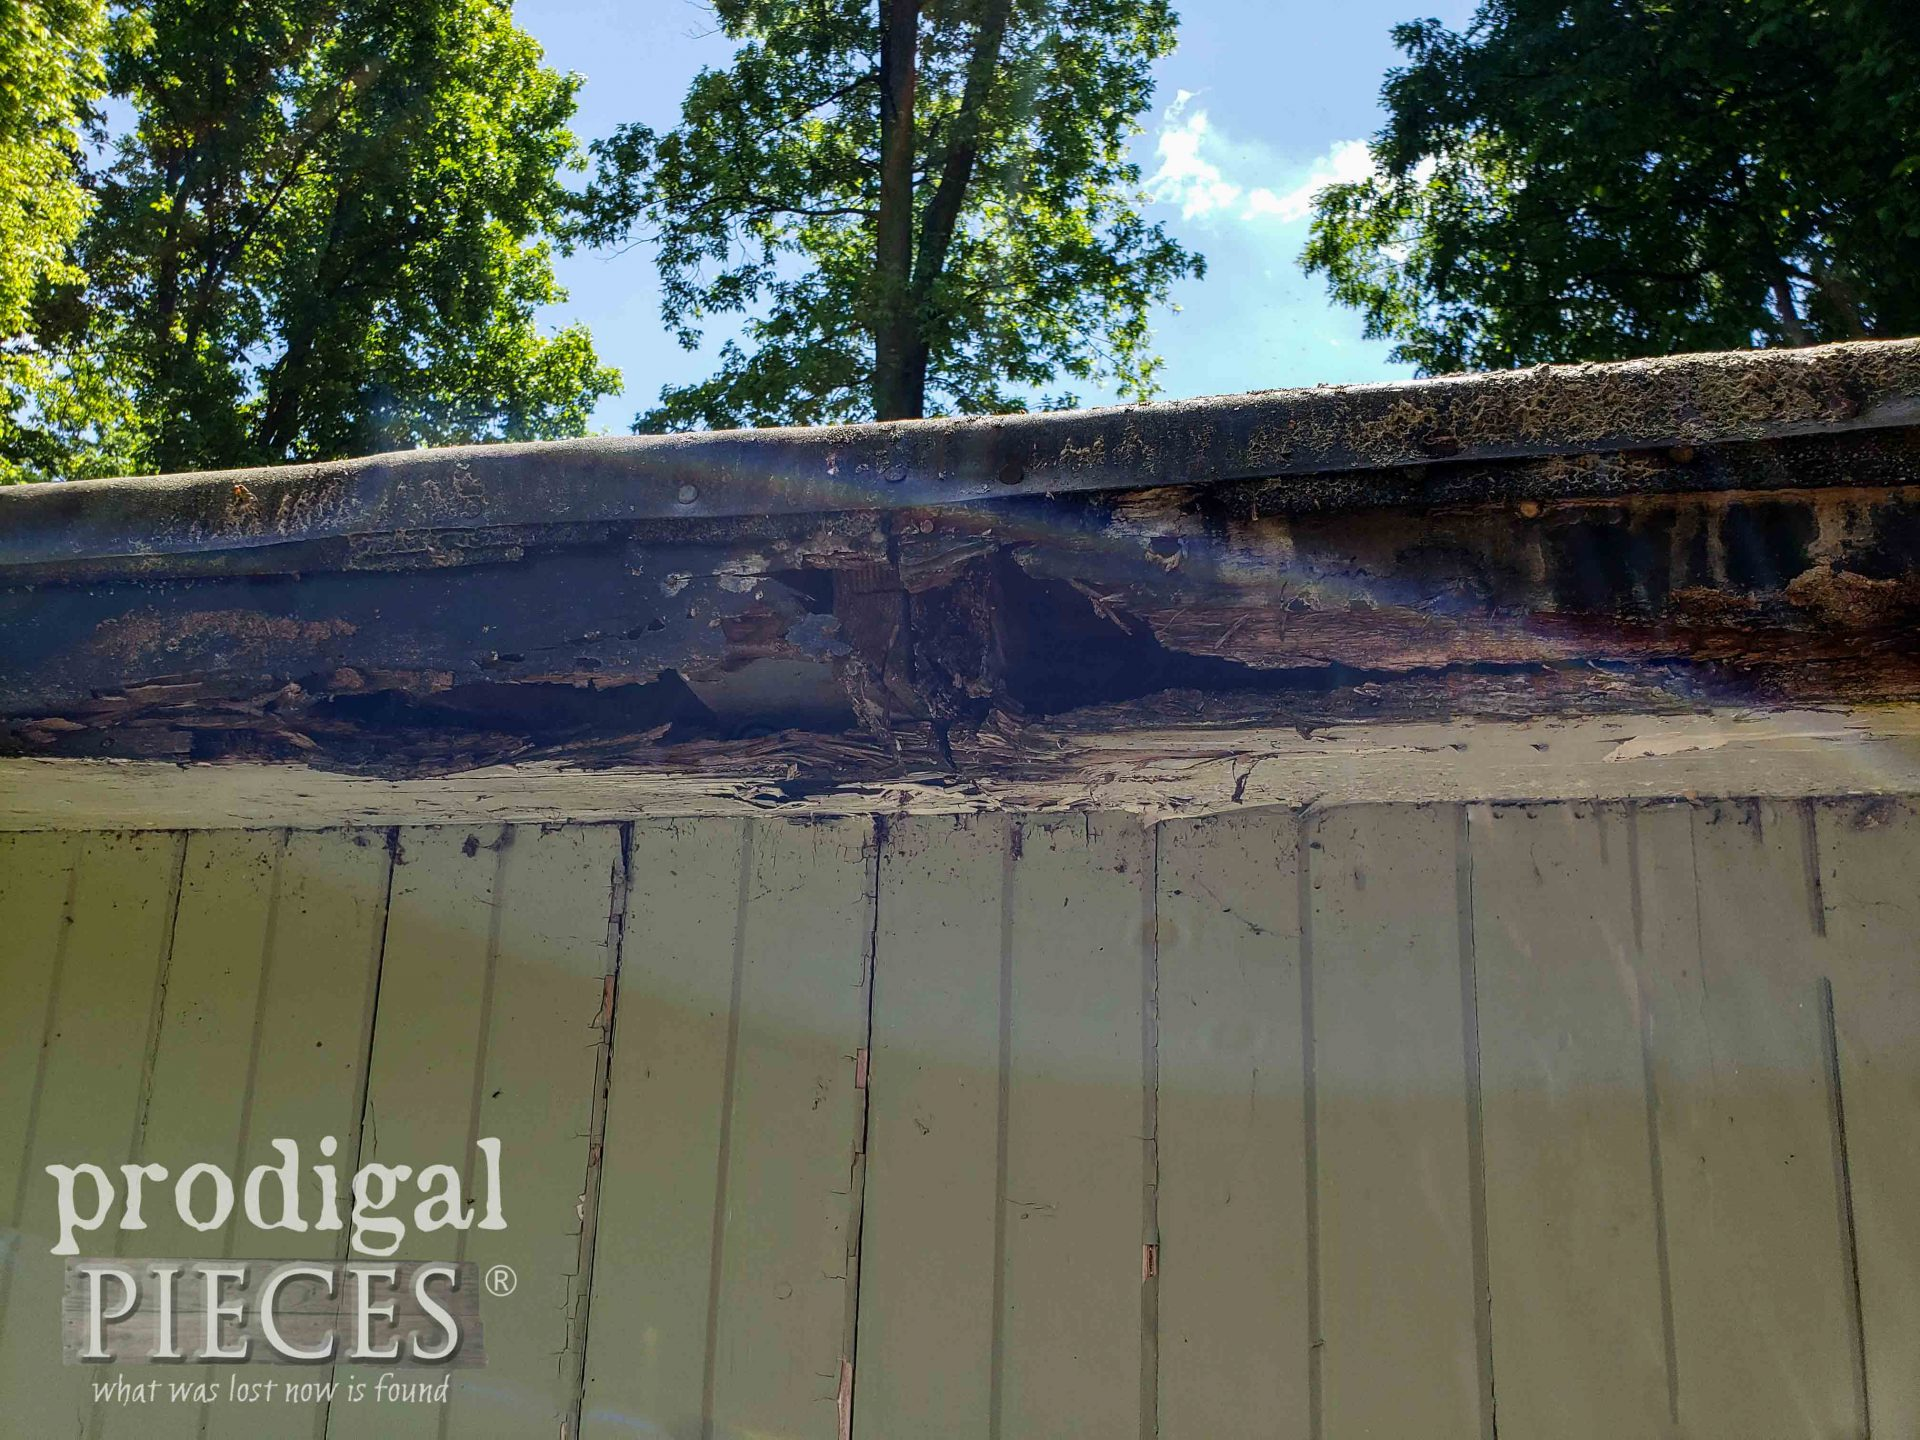 Garden Shed Rotted Soffit | prodigalpieces.com